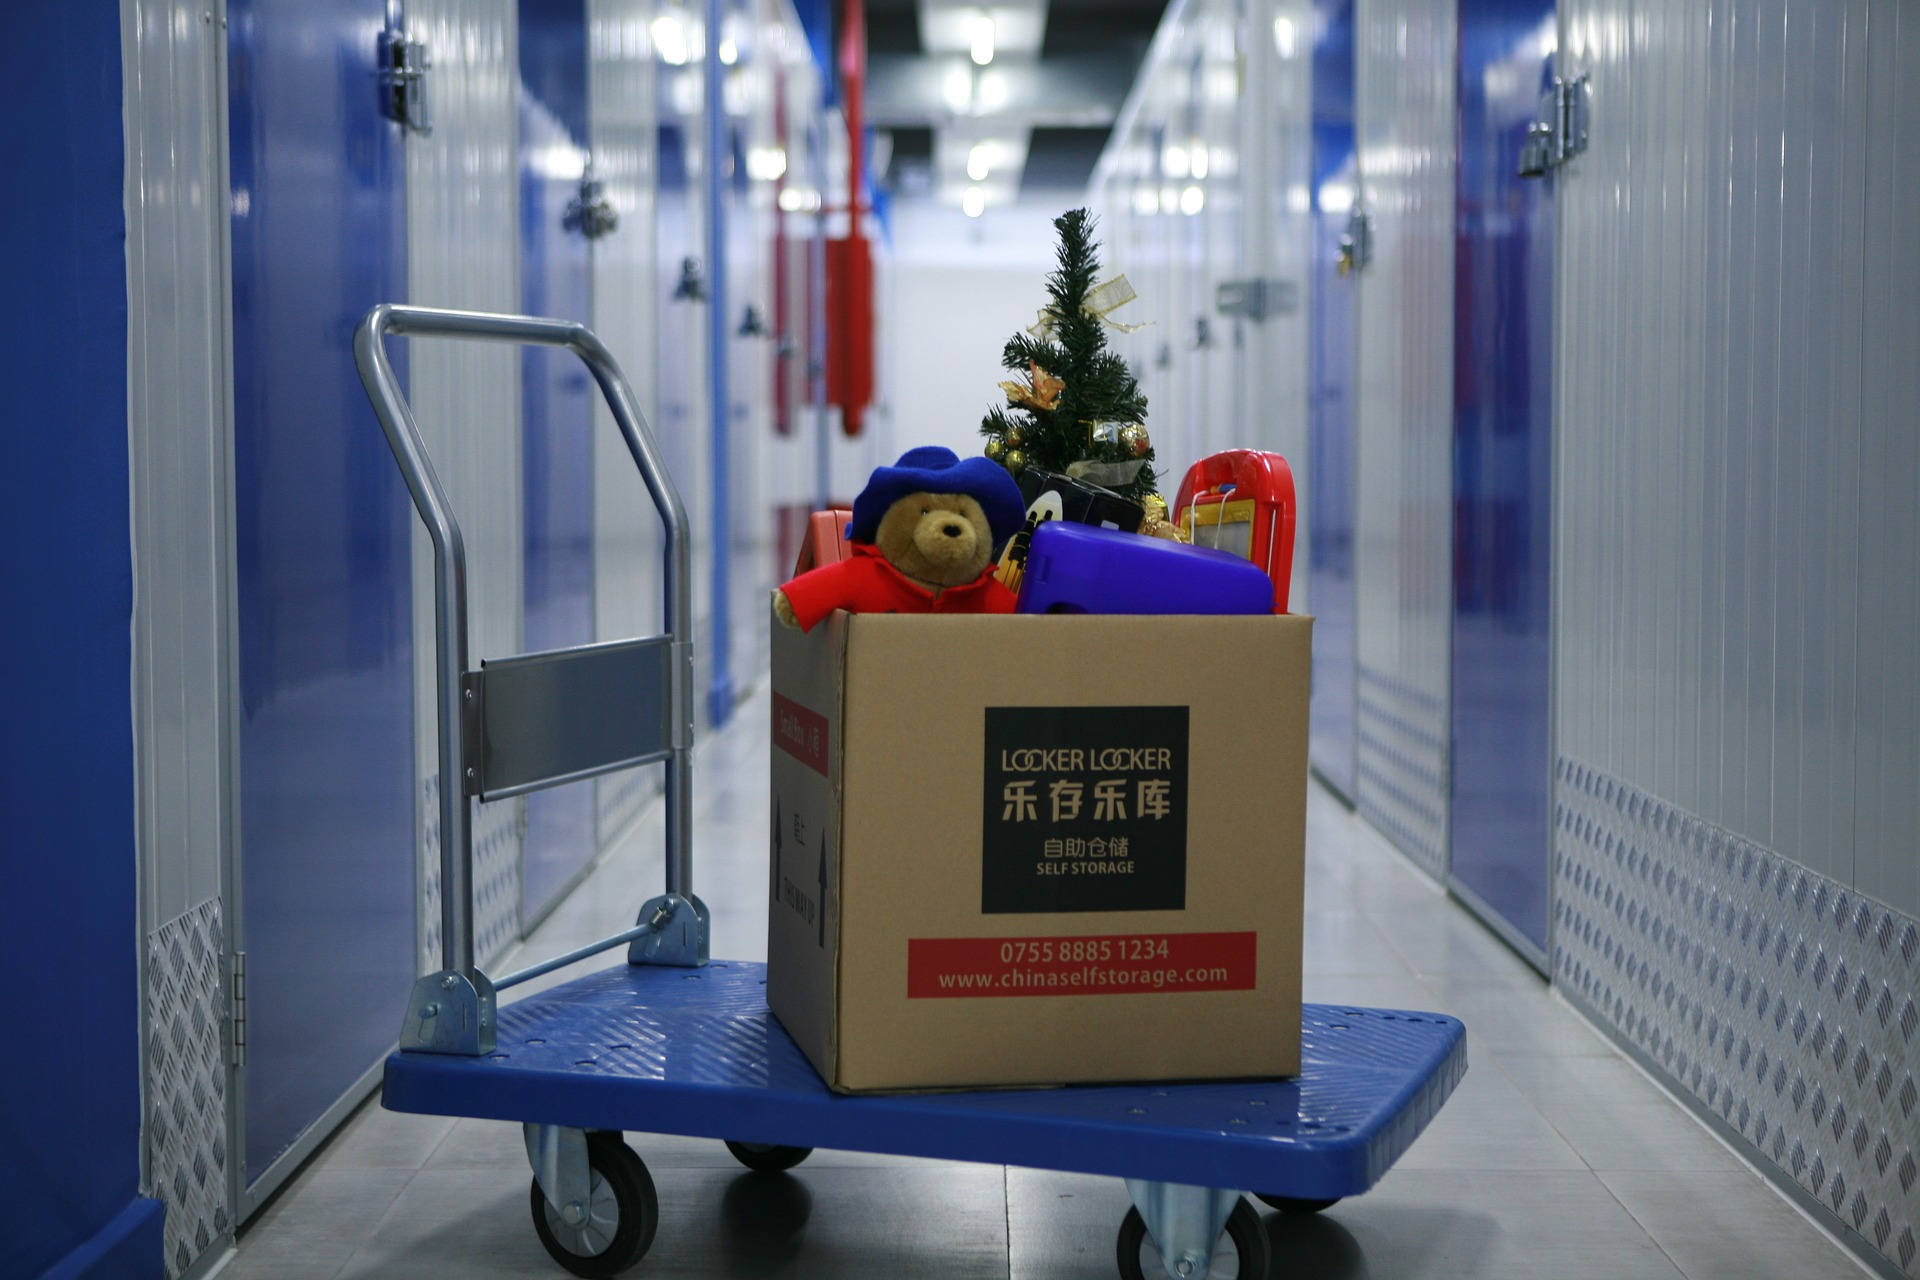 5 Things to Consider When Renting a Self-Storage Unit in Thailand -  My-Thai.org